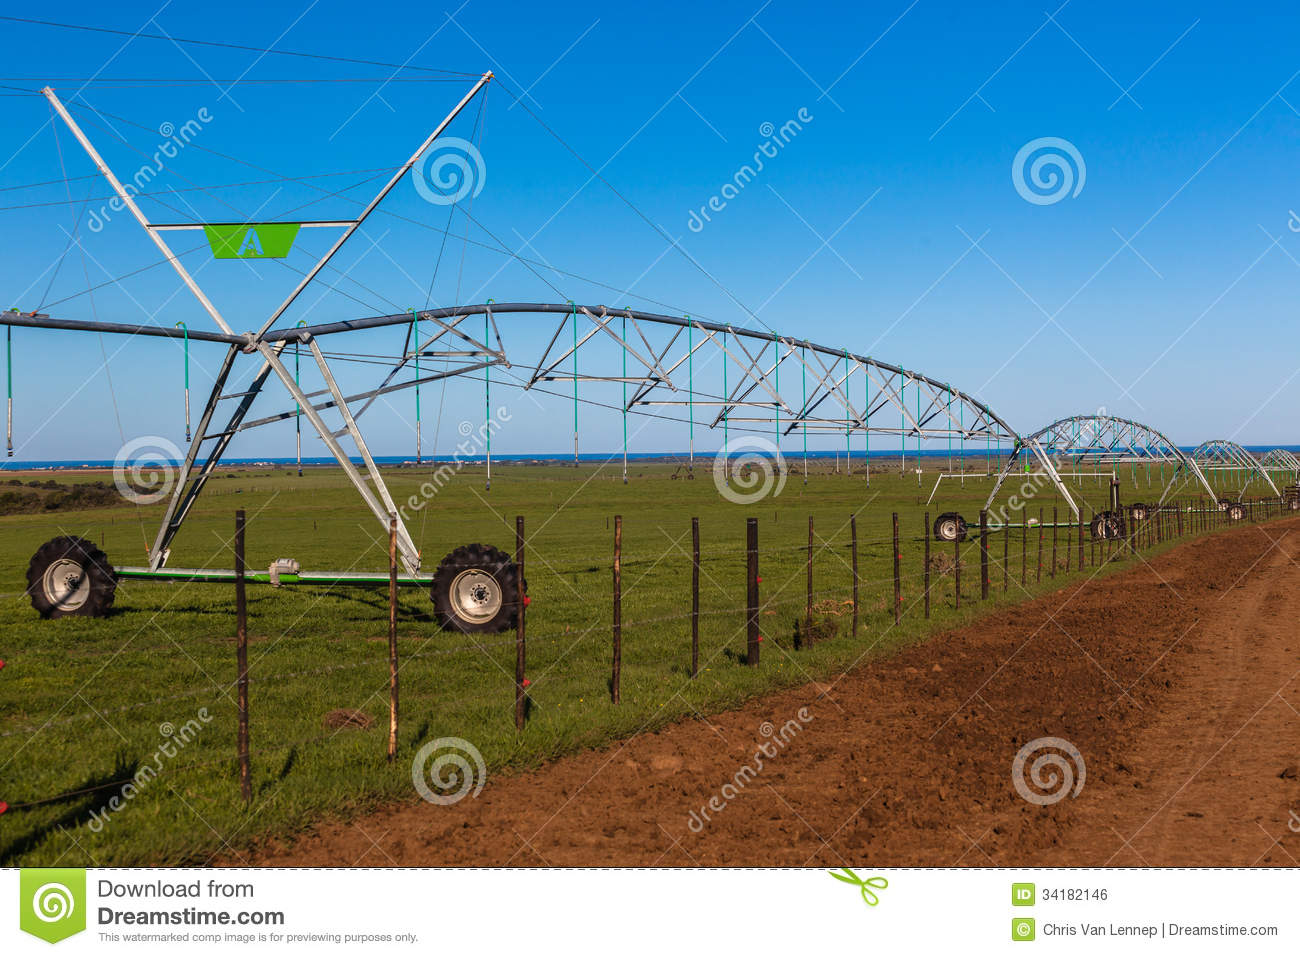 Farm Mobile Water Irrigation Sprinklers Royalty Free Stock Image